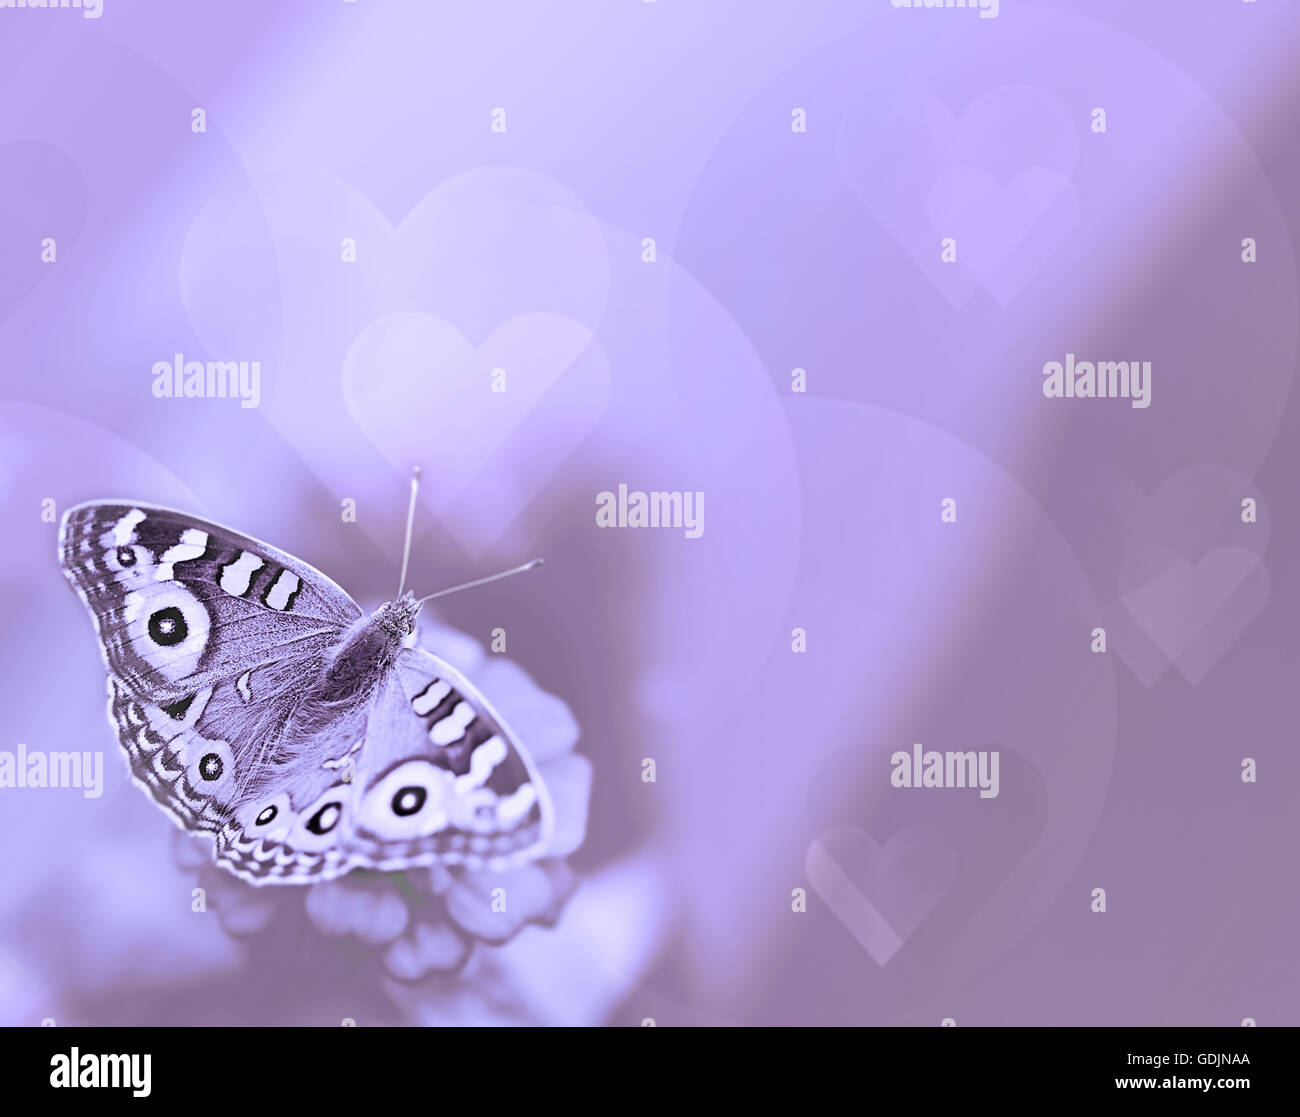 Butterfly with hearts on purple background for sympathy and symbol butterfly with hearts on purple background for sympathy and symbol of life hope soul and resurrection buycottarizona Images